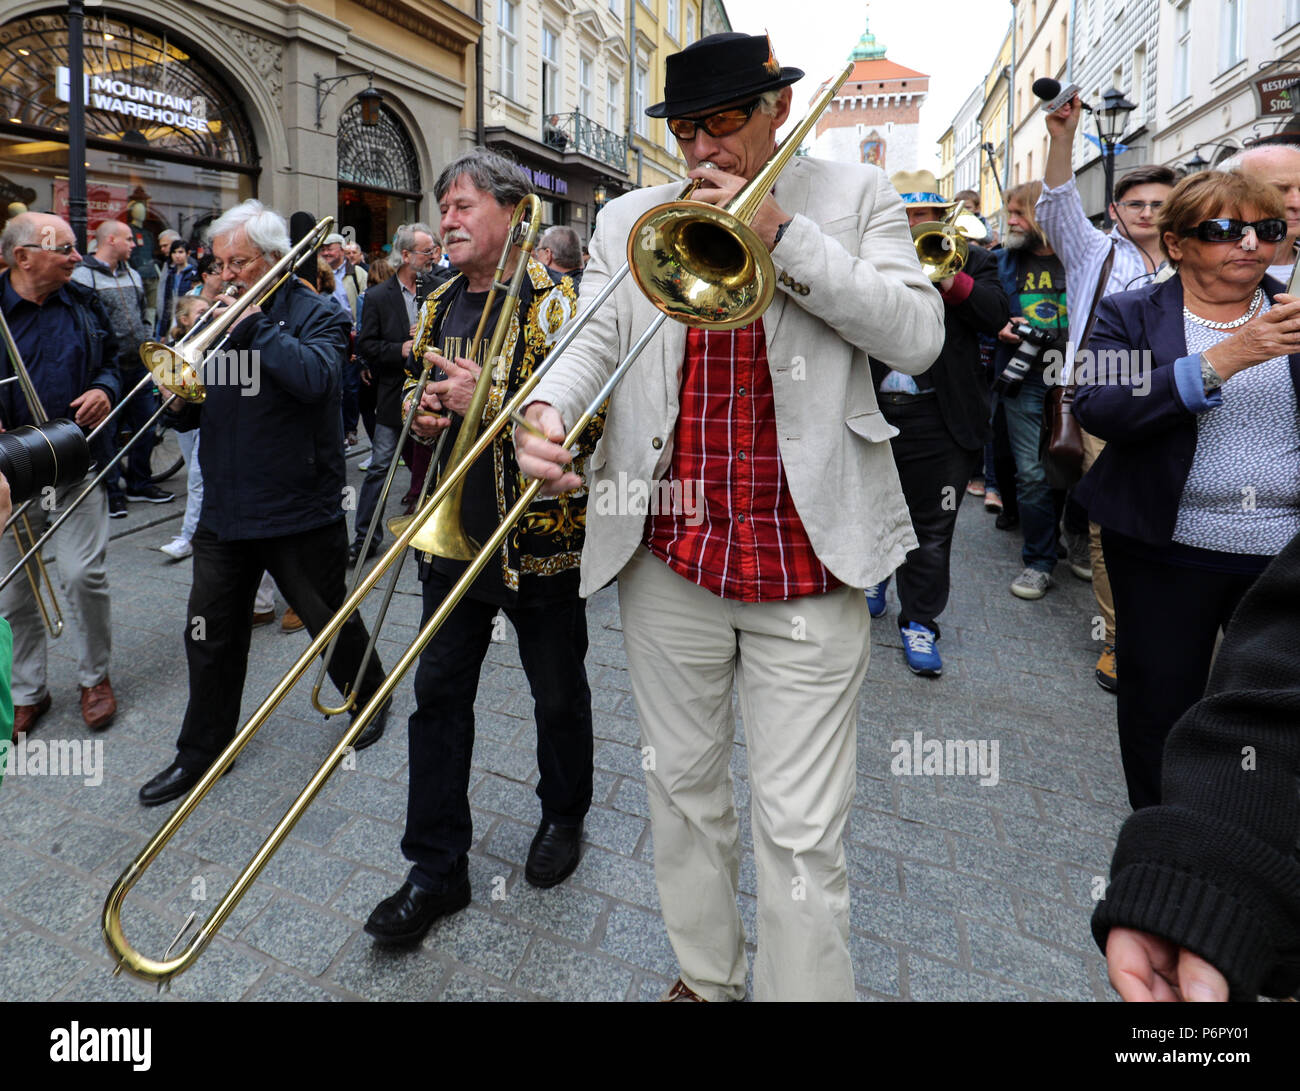 Cracow, Poland - July 1, 2018: New Orleans Parade from the Barbican to the Main Square  at the Summer Jazz Festival in Krakow. Poland Credit: Wieslaw Jarek/Alamy Live News - Stock Image